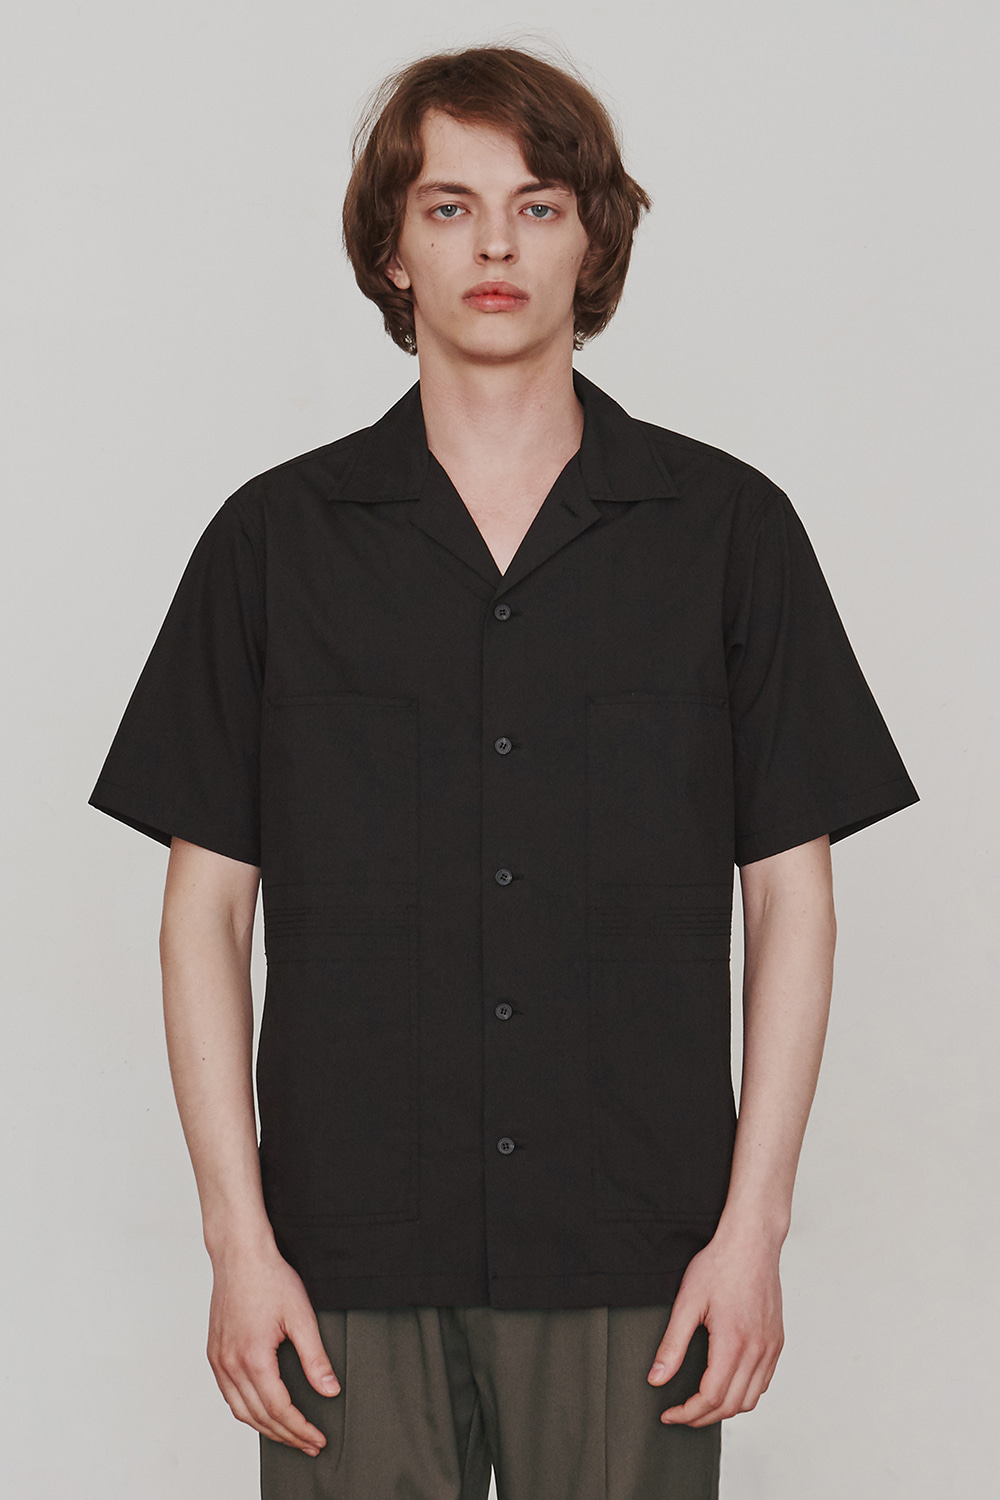 Finger Stitch Shirts (Black)ESFAI(에스파이)